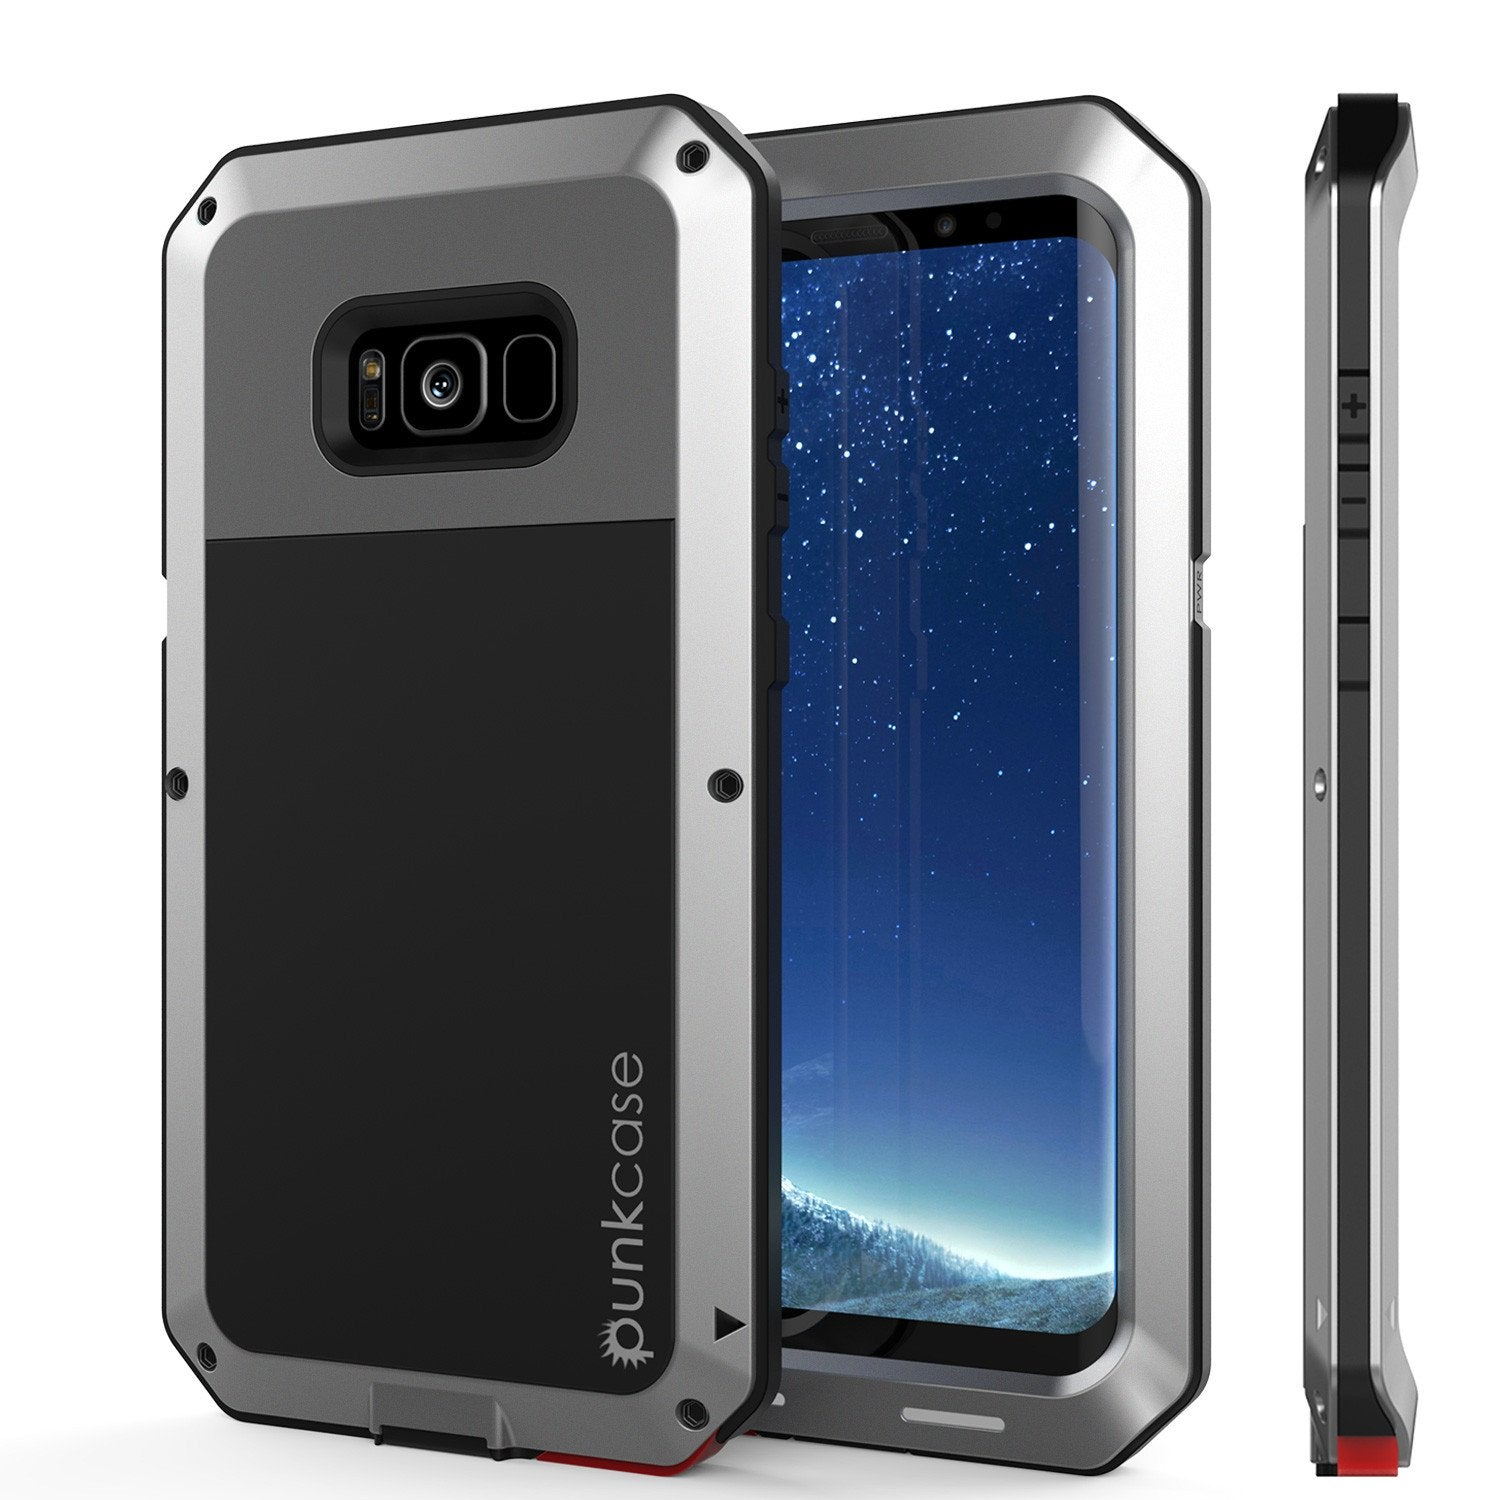 Galaxy S8+ Plus Metal Case, Heavy Duty Military Grade Rugged Armor Cover [shock proof] W/ Prime Drop Protection [SILVER]